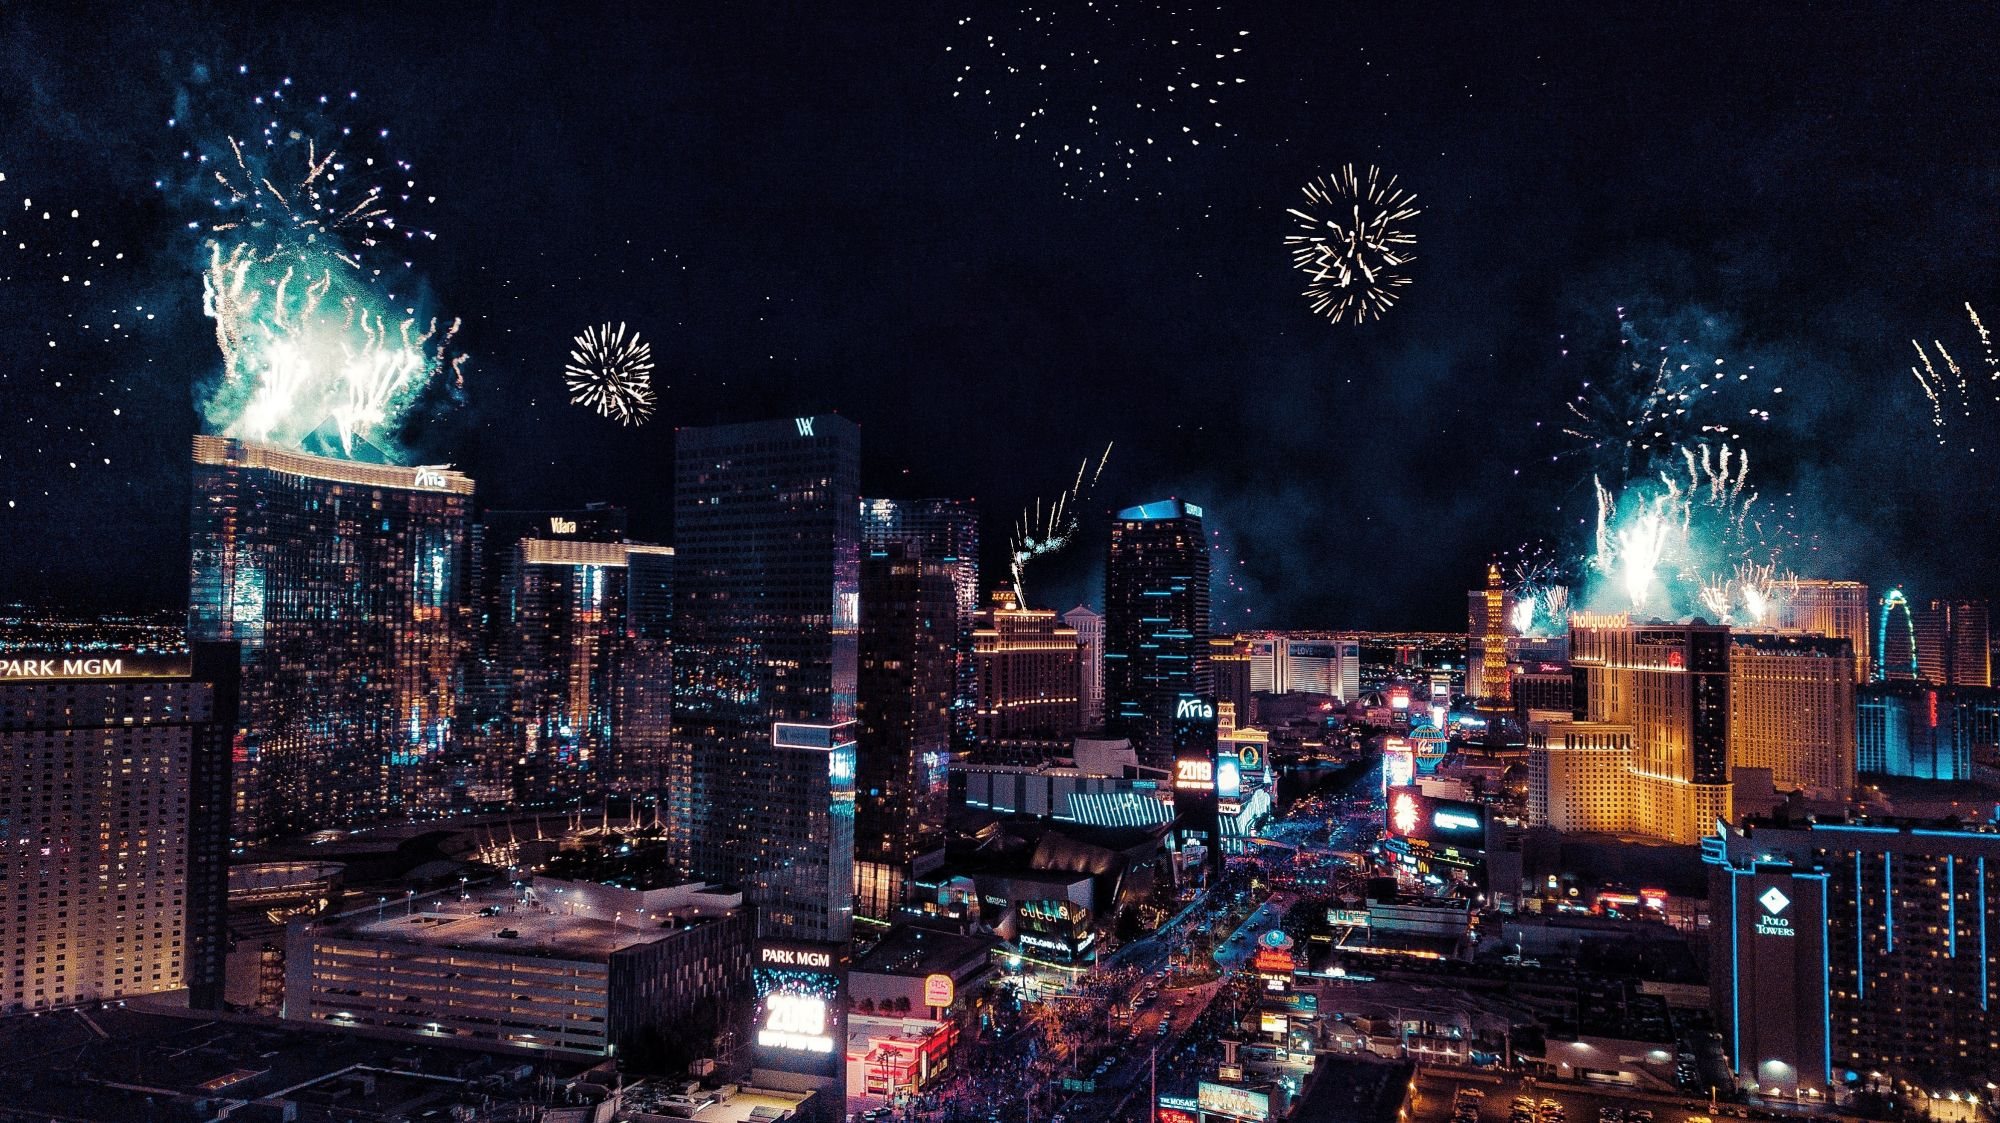 Which Are The Top Cities That Revellers Will Be Celebrating New Year's Eve In?